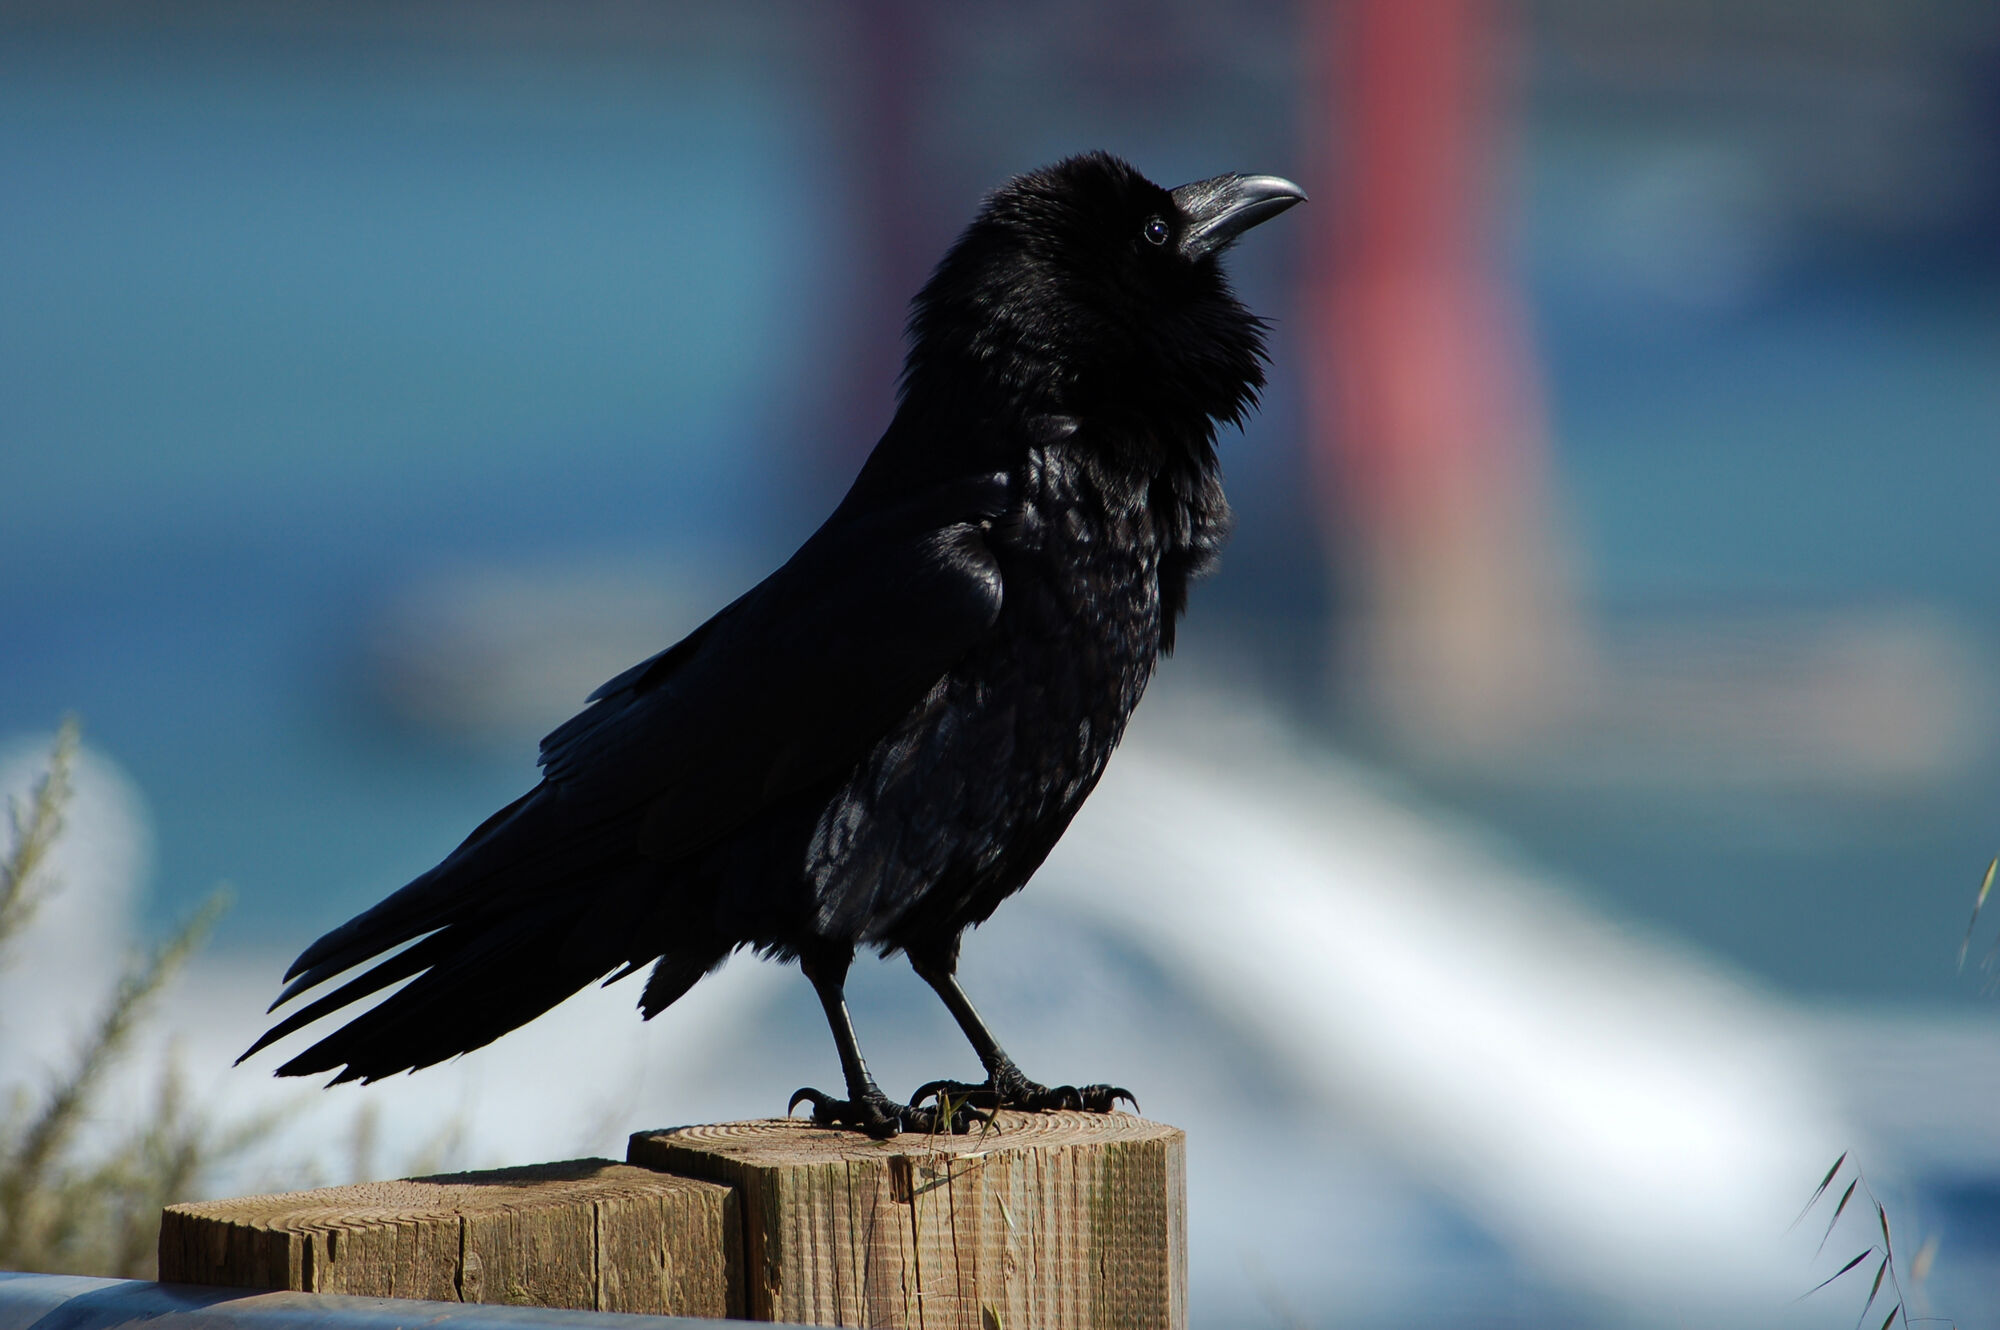 The symbolism and representations of the raven bird in history